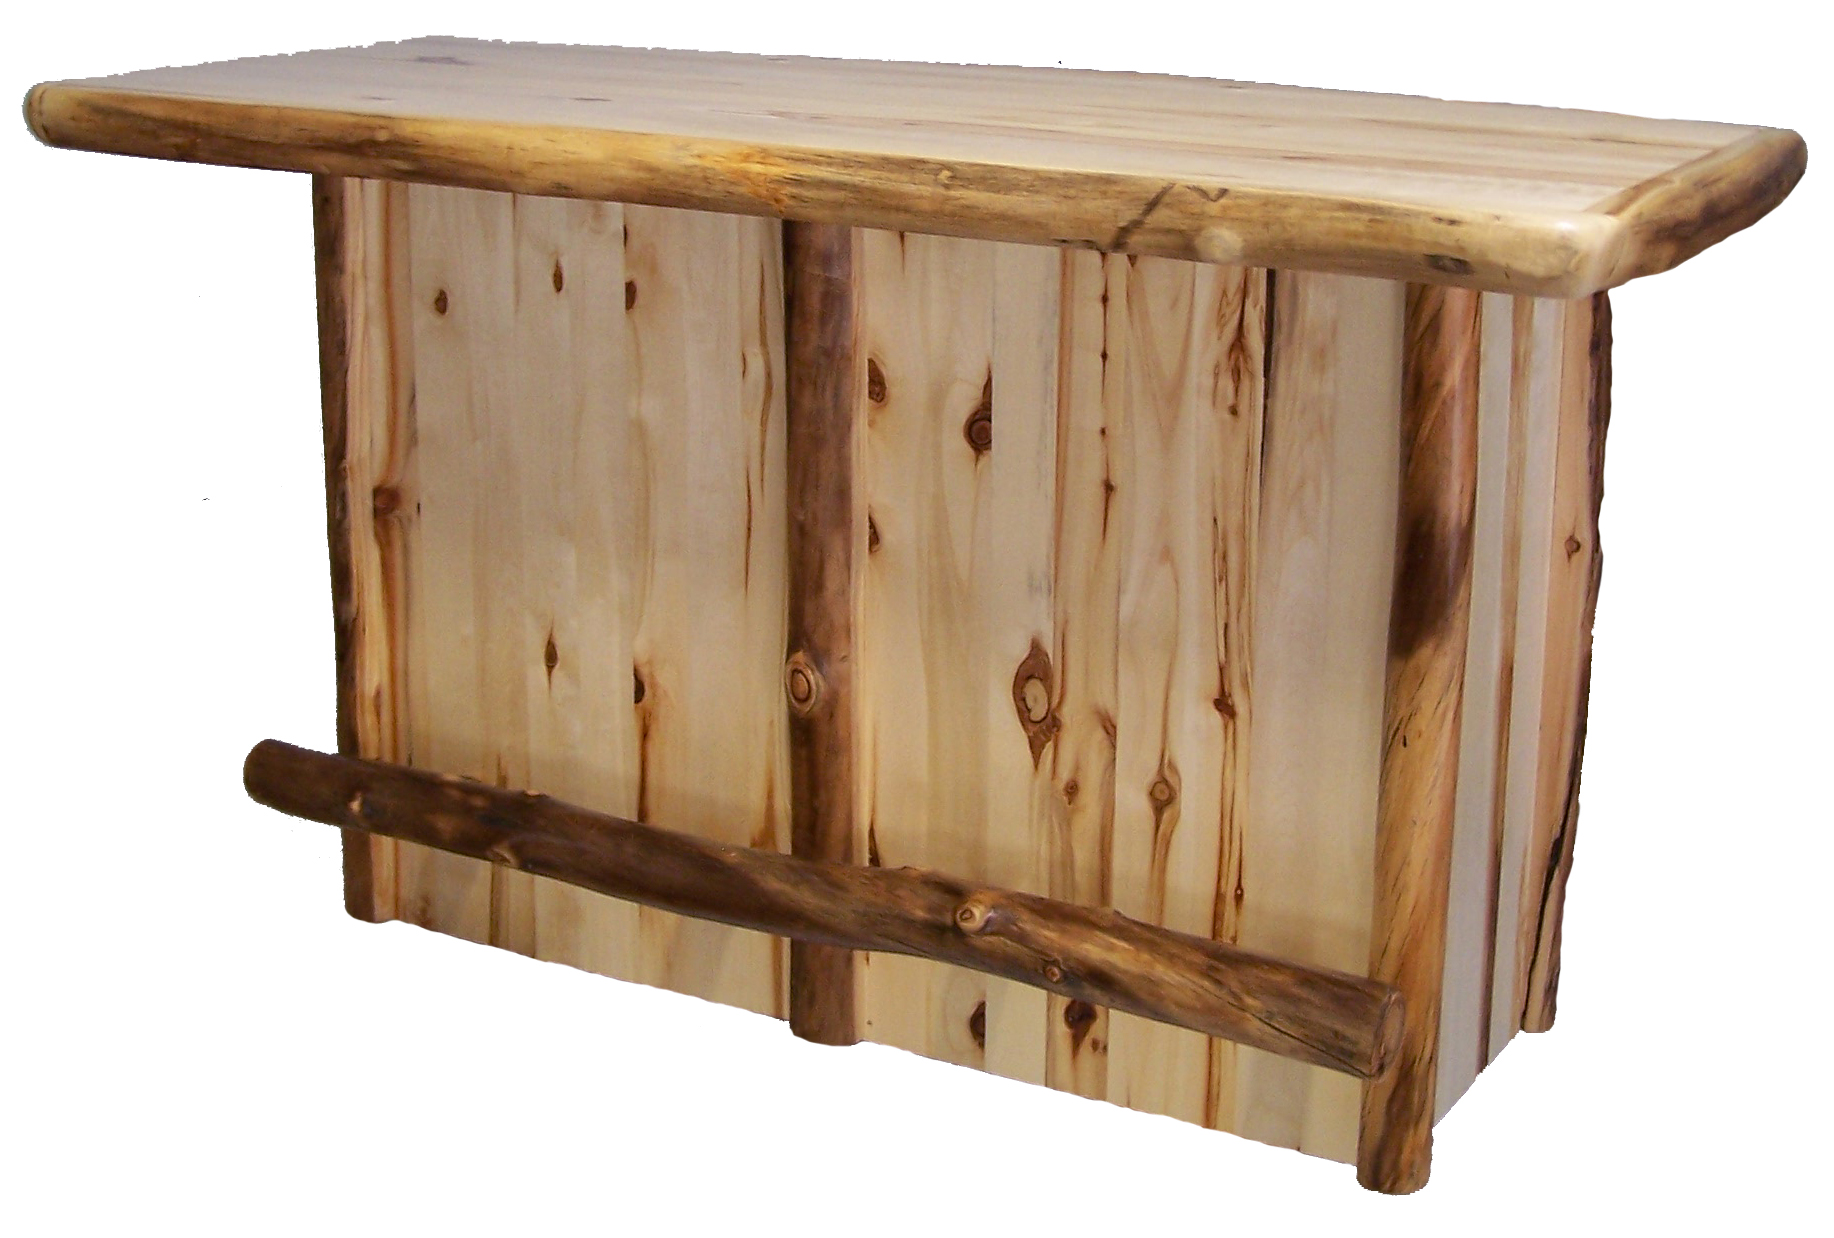 Custom Bars Amp Cabinets Rustic Furniture Mall By Timber Creek